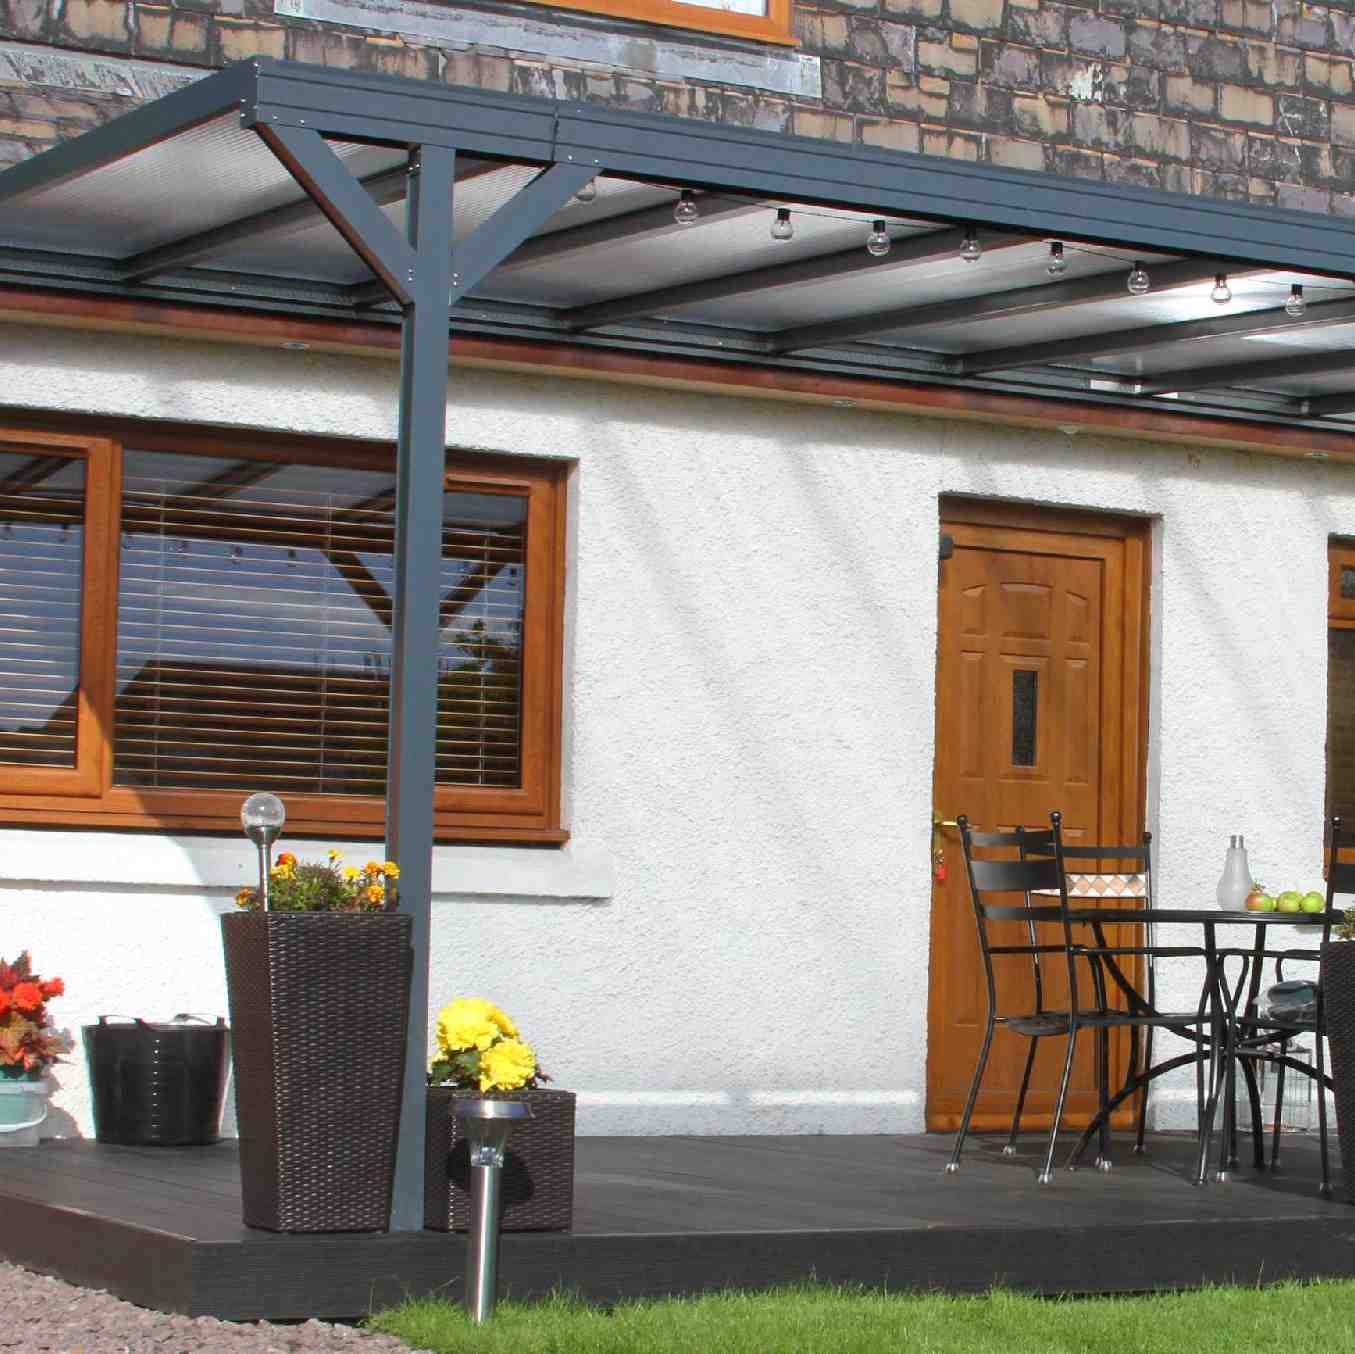 Omega Verandah, Anthracite Grey, 16mm Polycarbonate Glazing - 4.2m (W) x 2.0m (P), (3) Supporting Posts